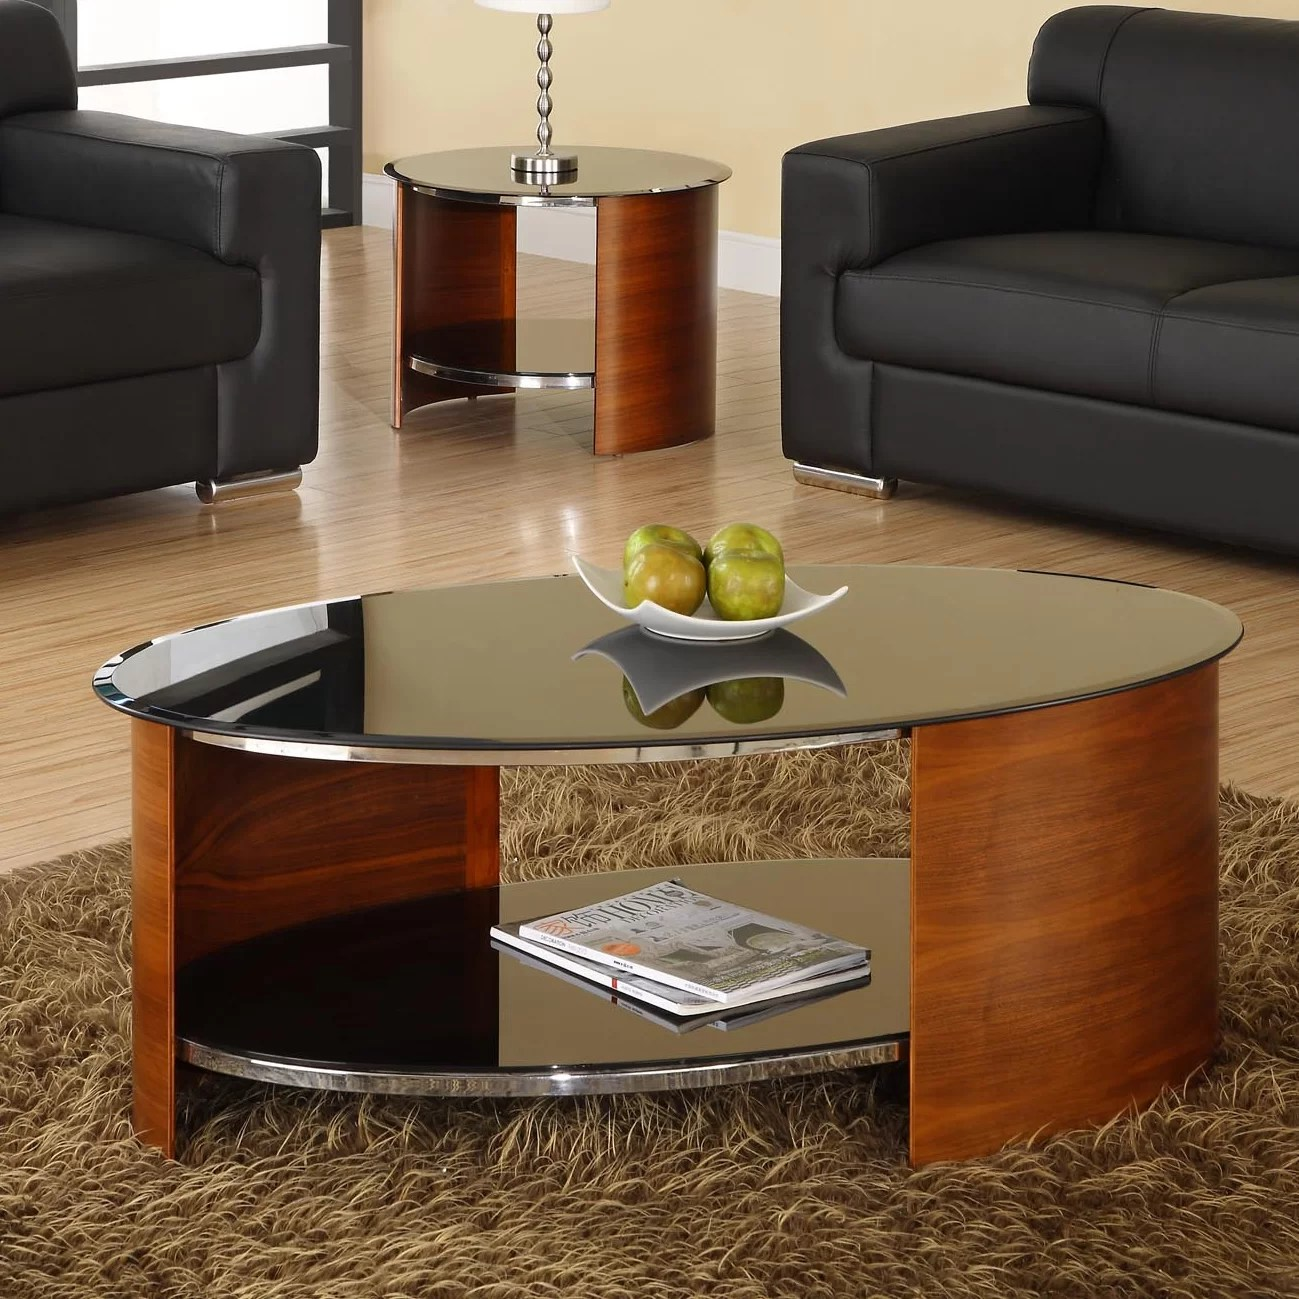 Couchtisch Curve Von Jual Jual Curve Coffee Table With Magazine Rack And Reviews